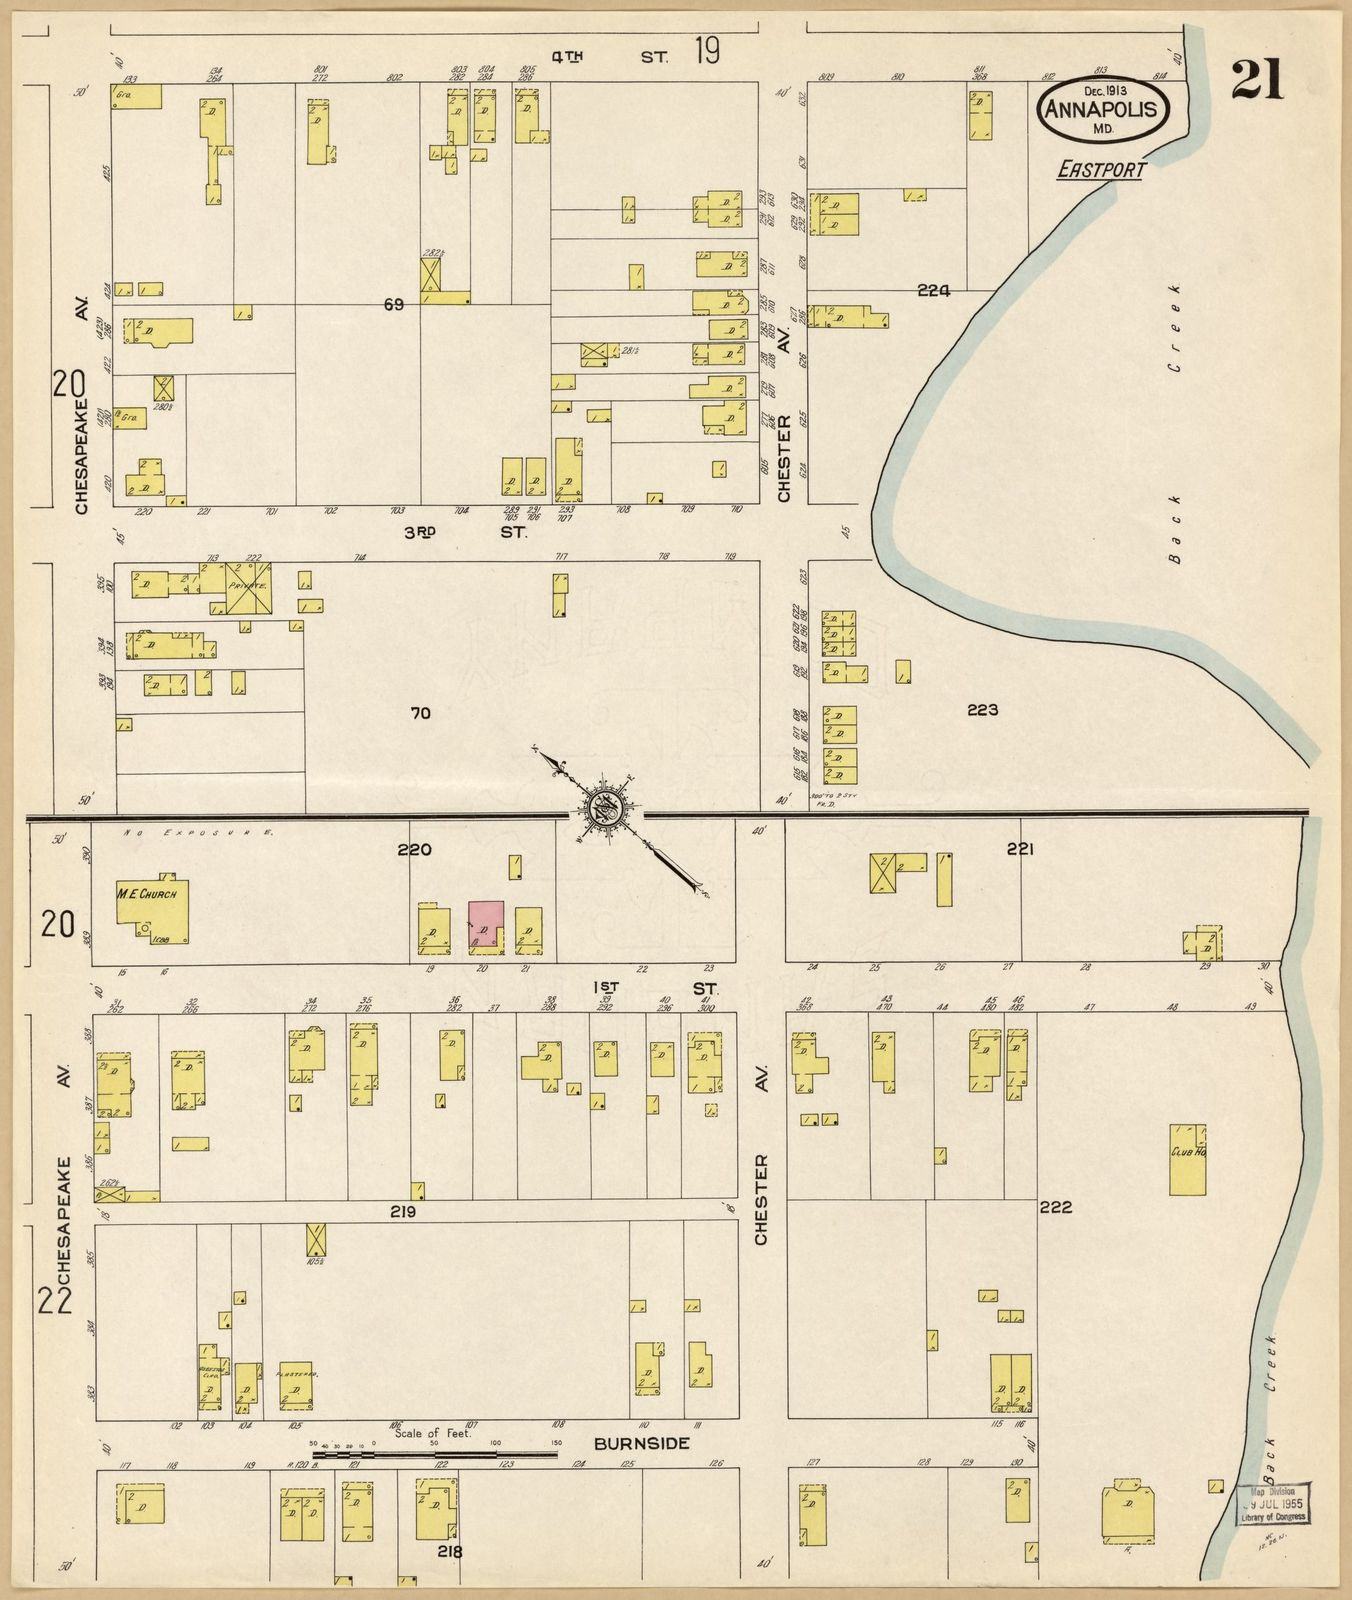 Https Media Swanson Coolidge And Lady Astor 42822 Wiring Diagram 1477 Bolens Sanborn Fire Insurance Map From Annapolis Anne Arundel County Maryland 19 1600